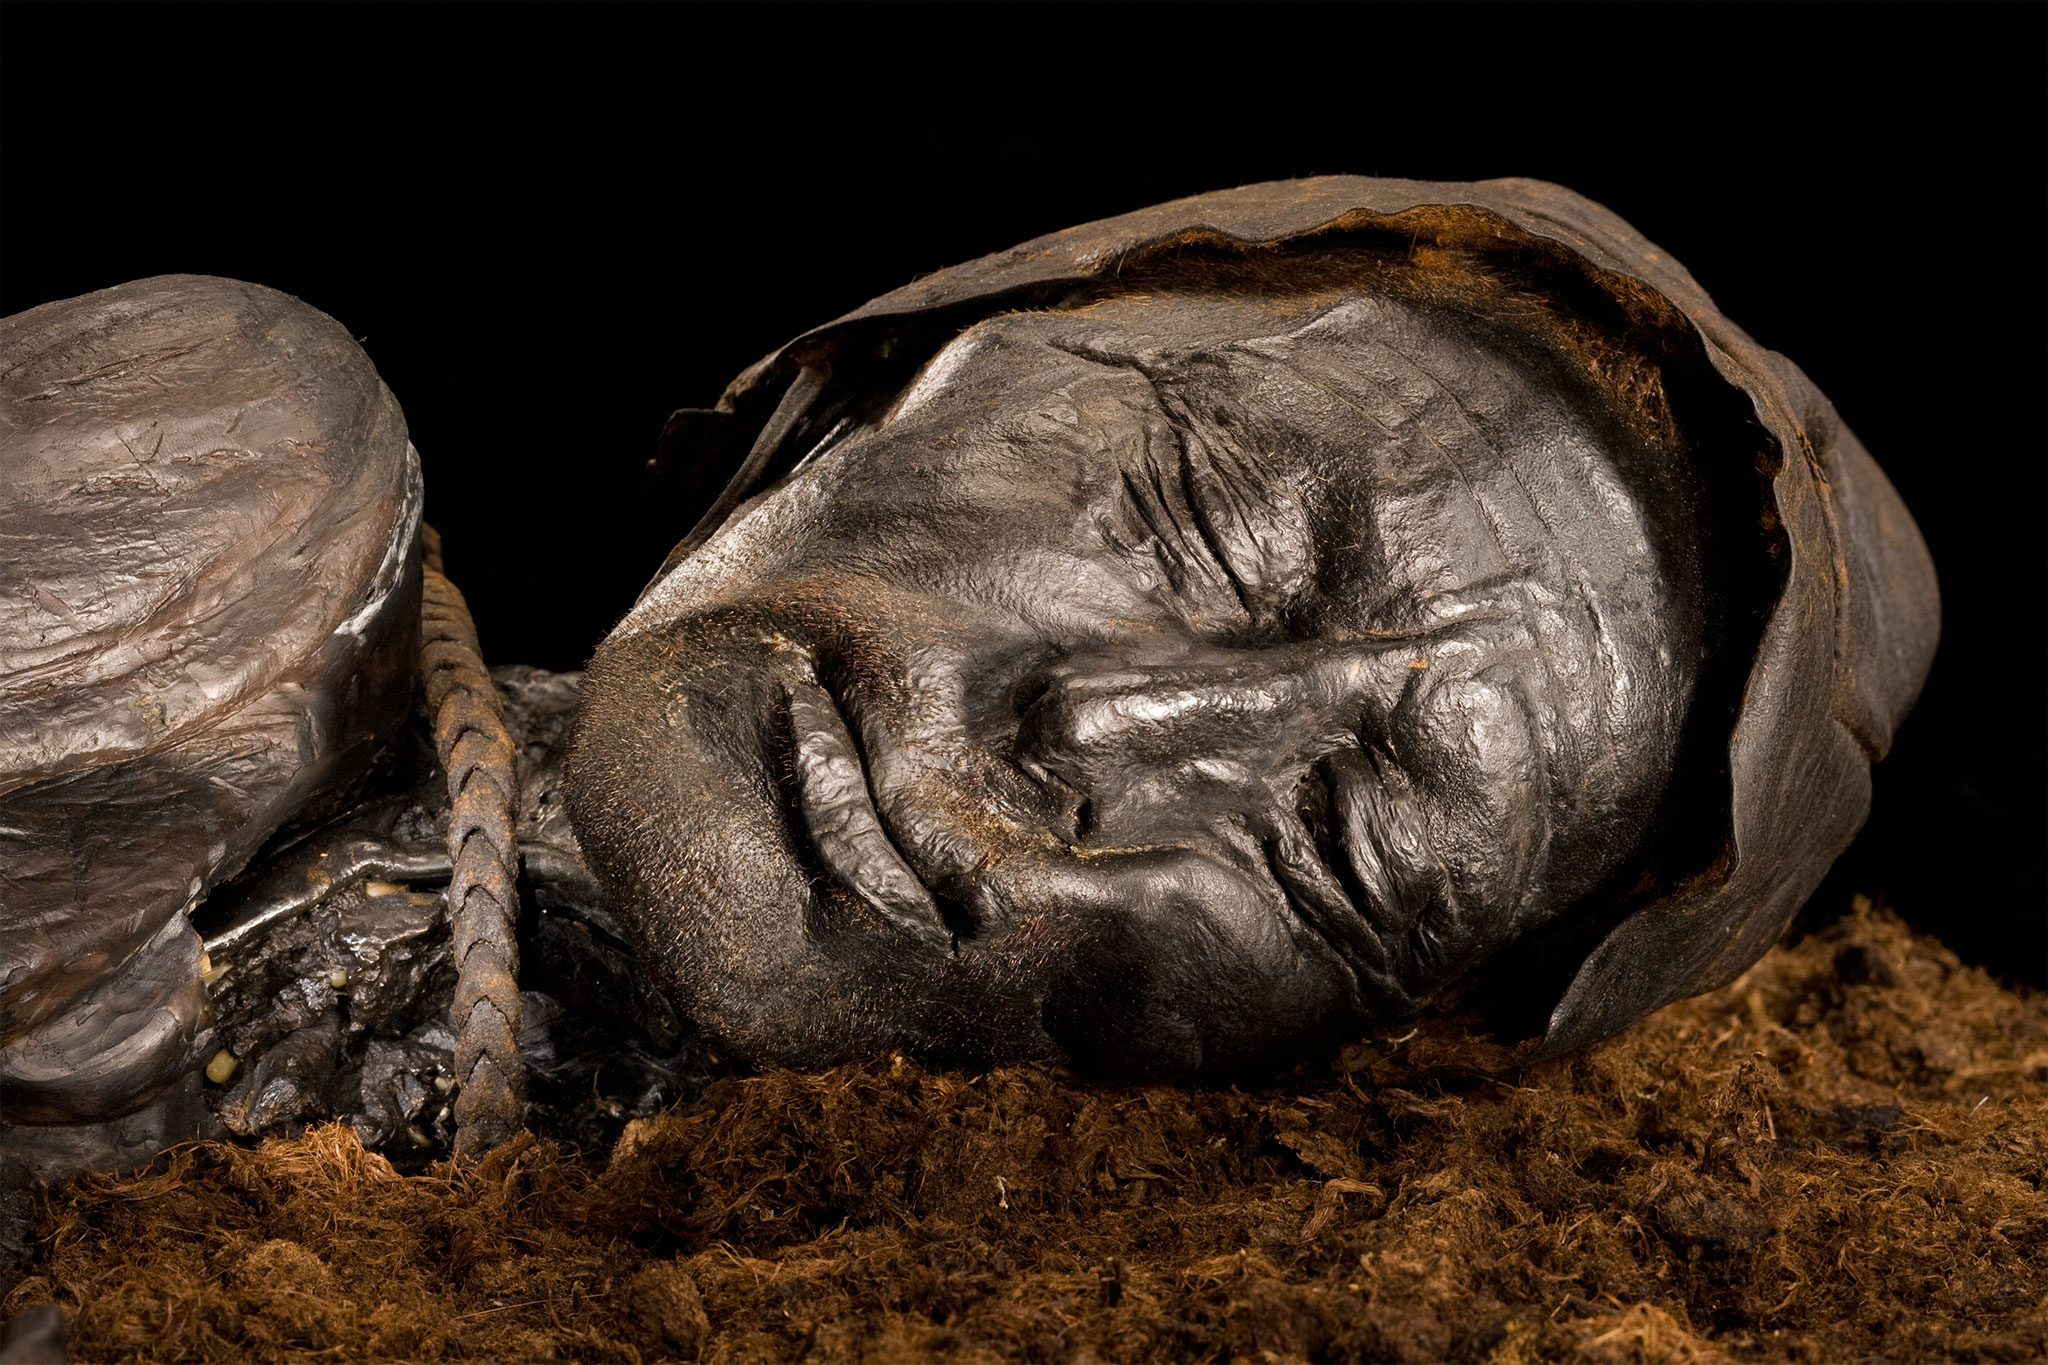 Unconventional Burial Customs facts